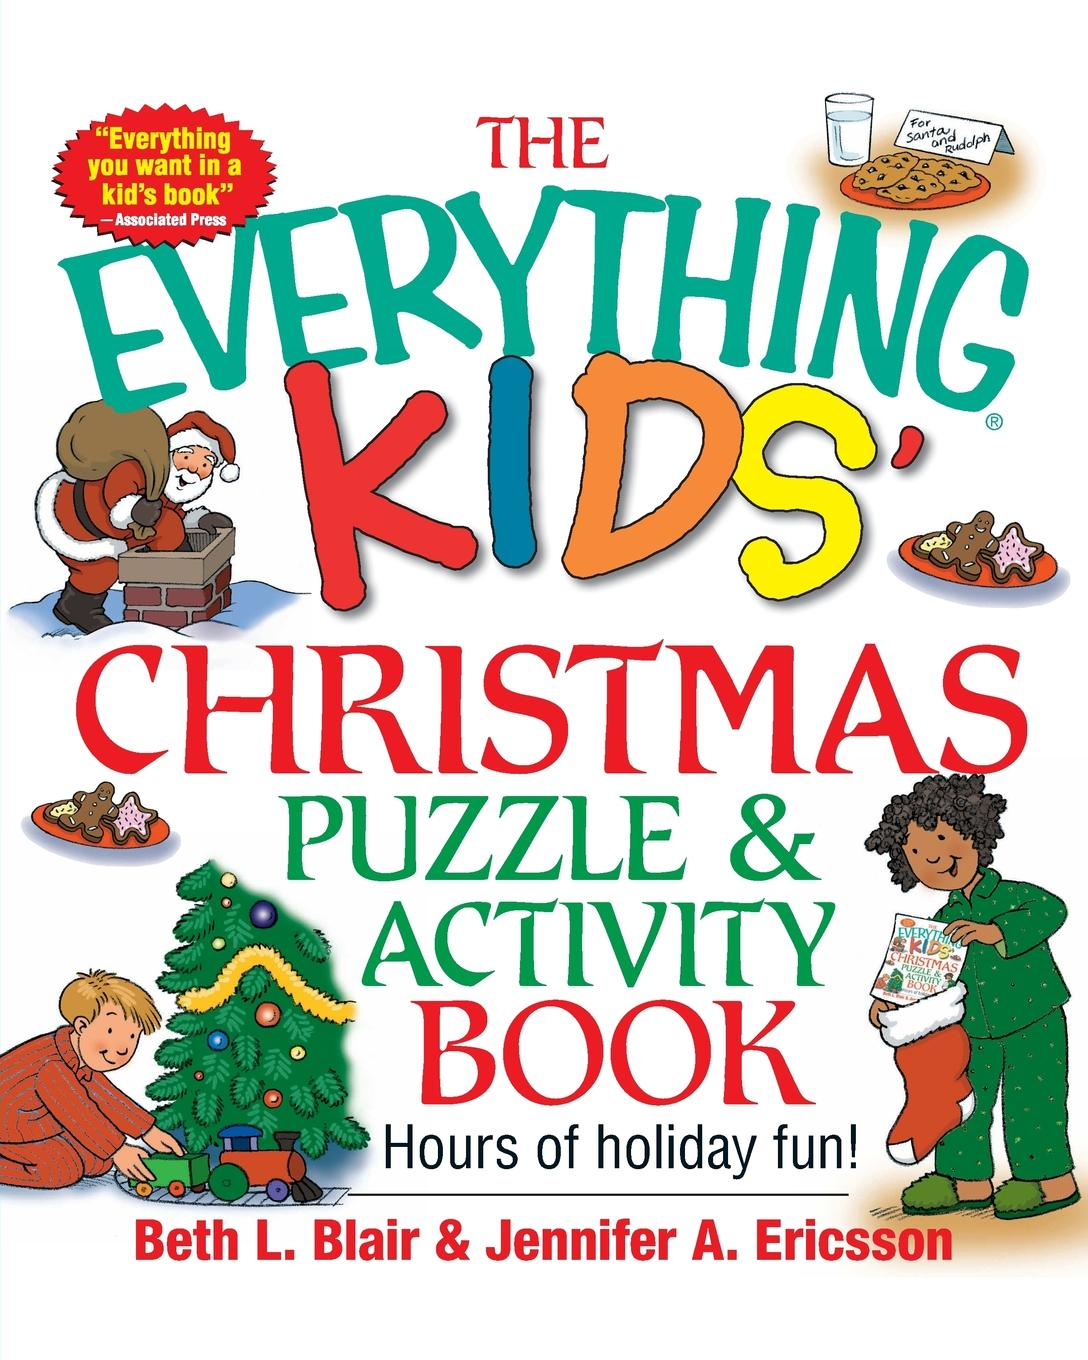 Beth L. Blair, Jennifer A. Ericsson The Everything Kids. Christmas Puzzle and Activity Book. Mazes, Activities, and Puzzles for Hours of Holiday Fun wooden fun ball puzzle toy for kids wood